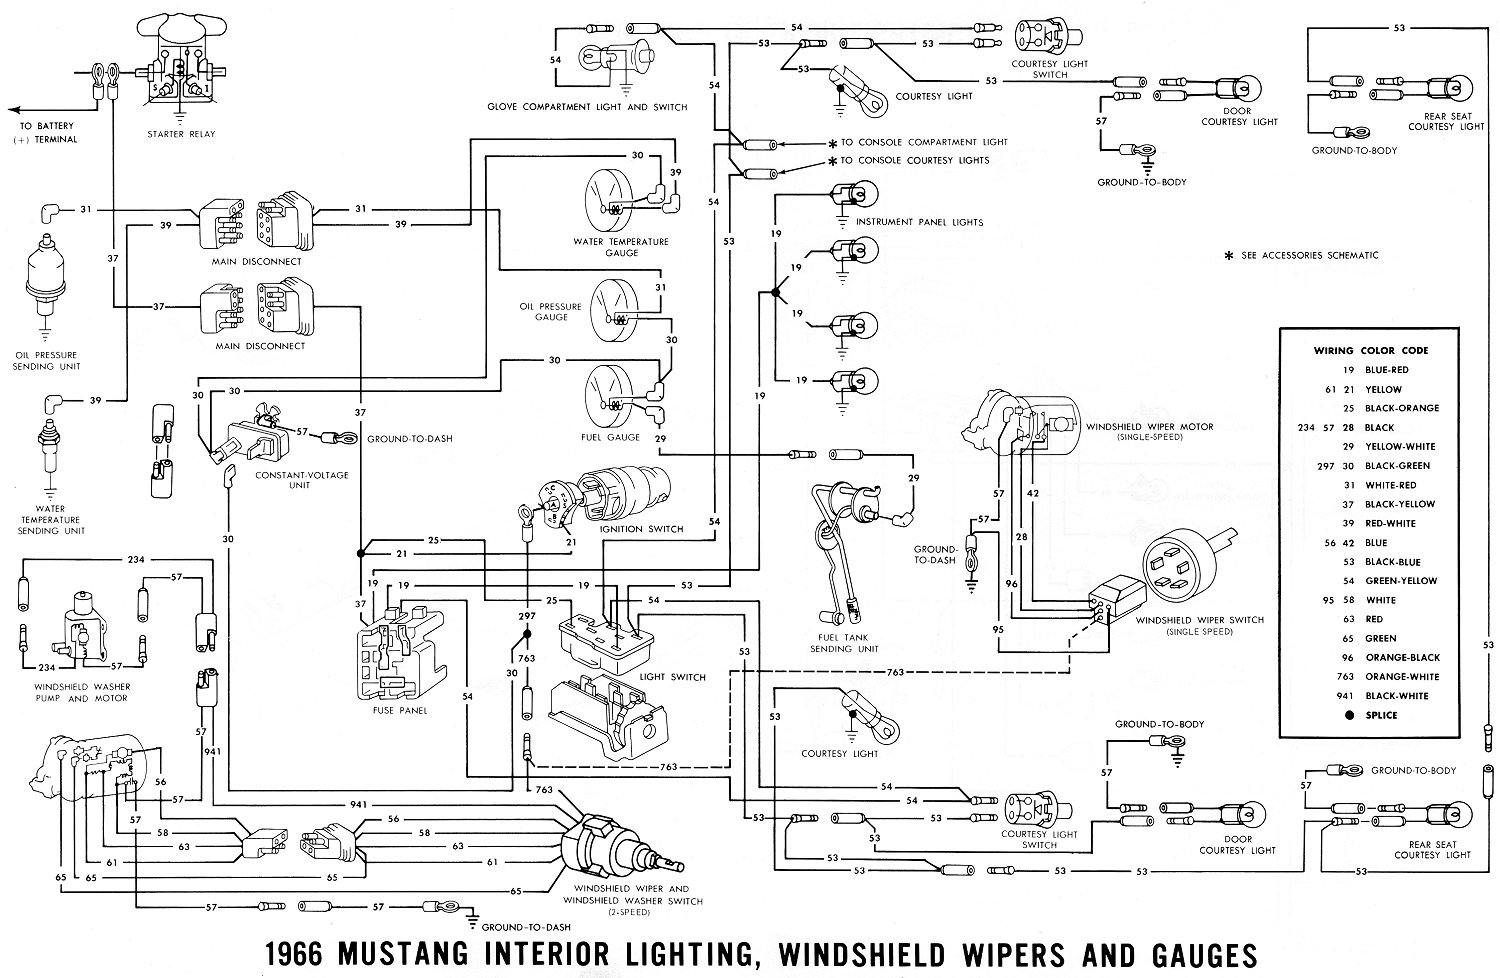 66inter1 1966 mustang wiring diagrams average joe restoration 66 mustang wiring diagram at eliteediting.co